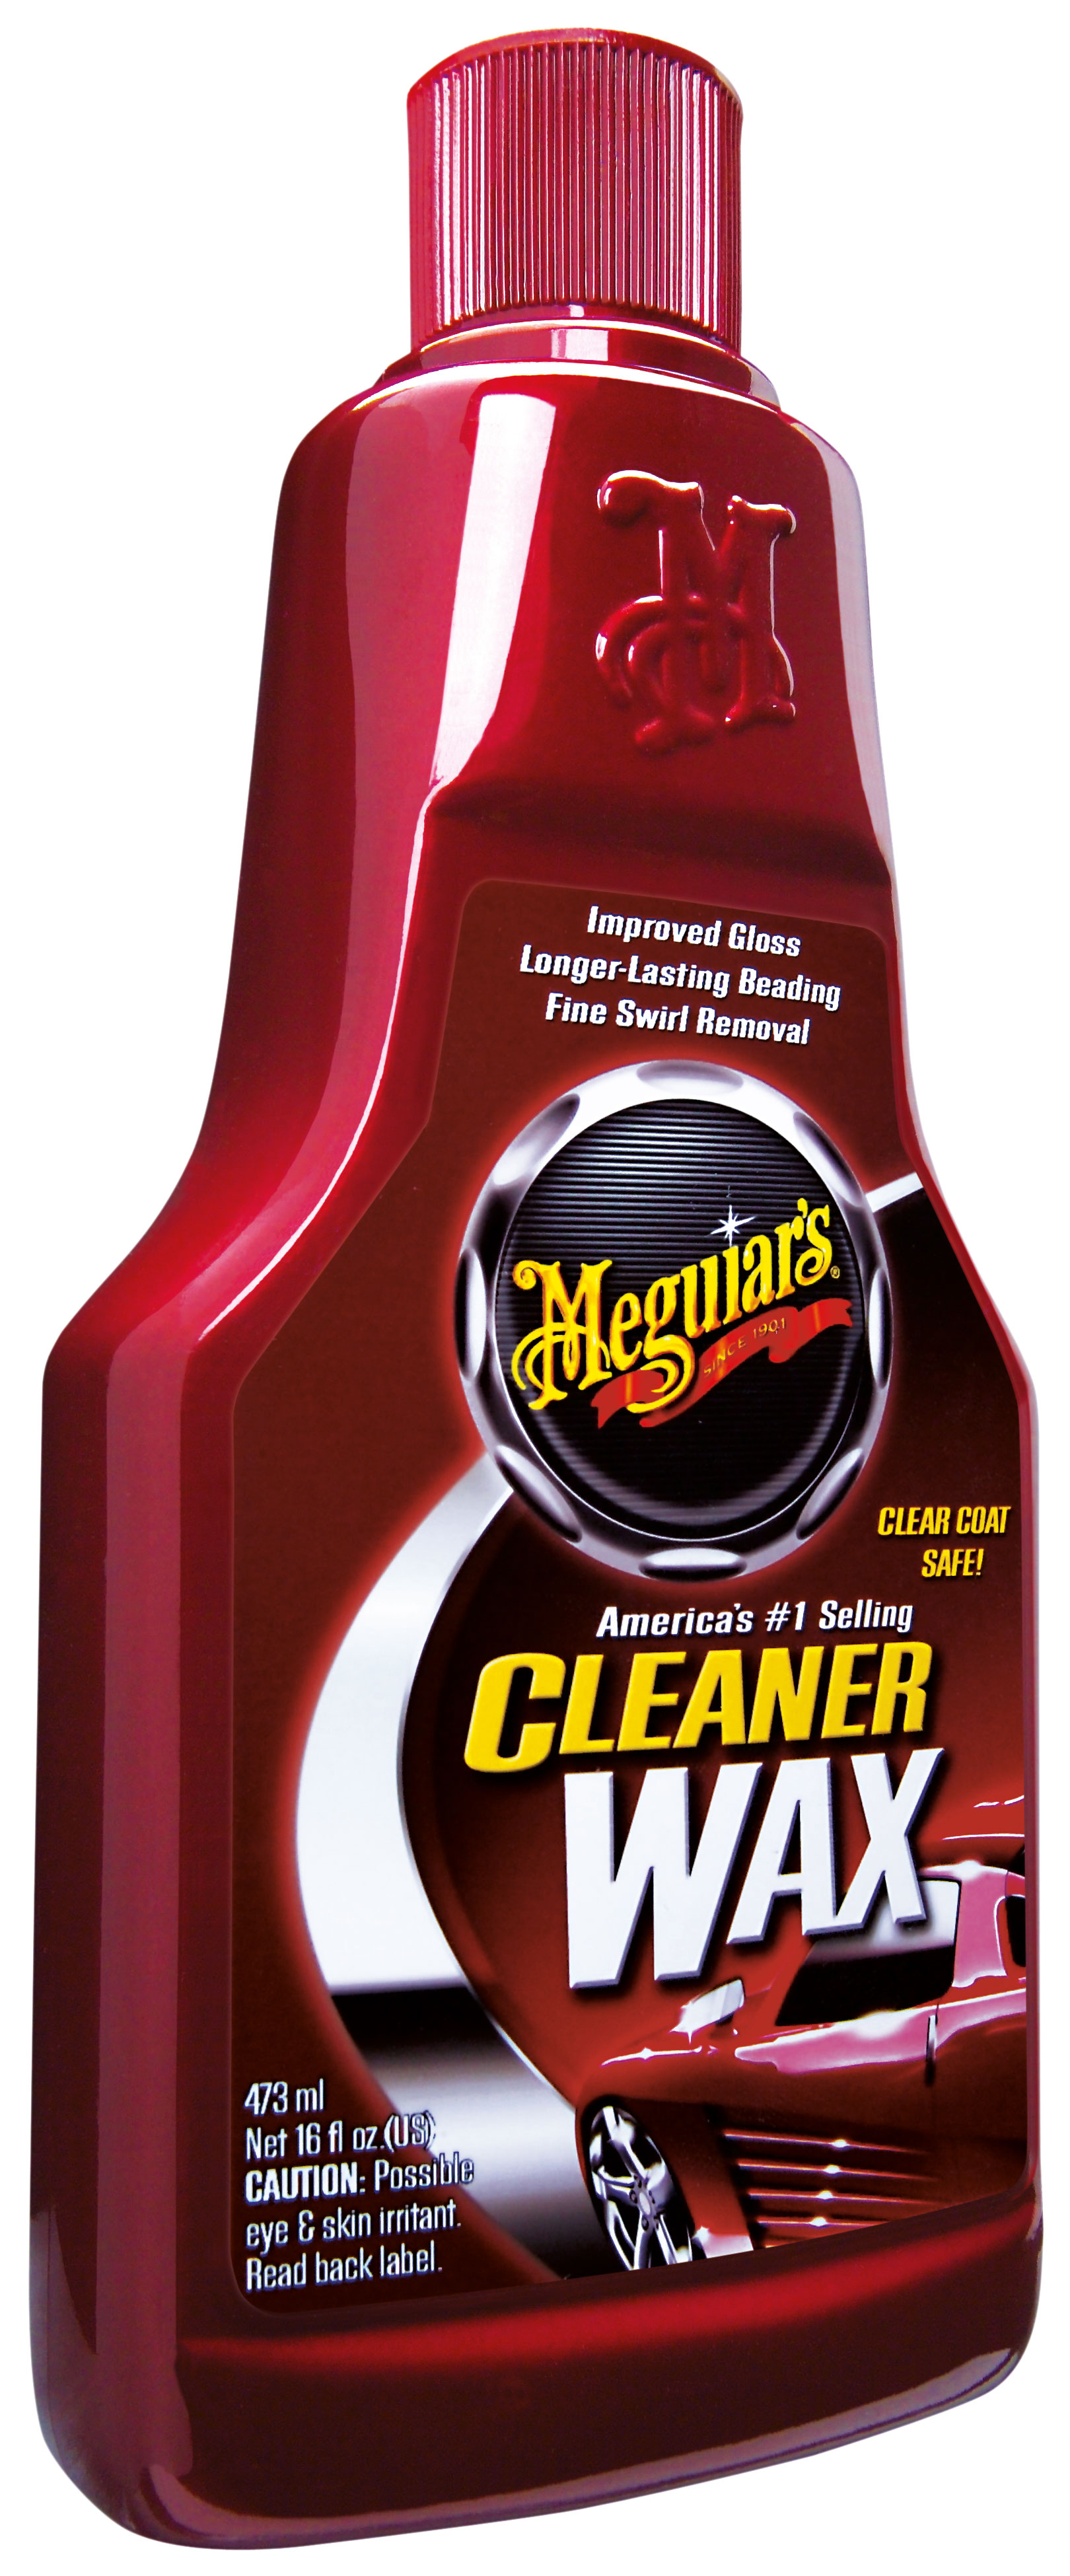 Meguiars Cleaner Wax Wachs Autowachs und Lackreiniger Liquid A1216EU 473ml